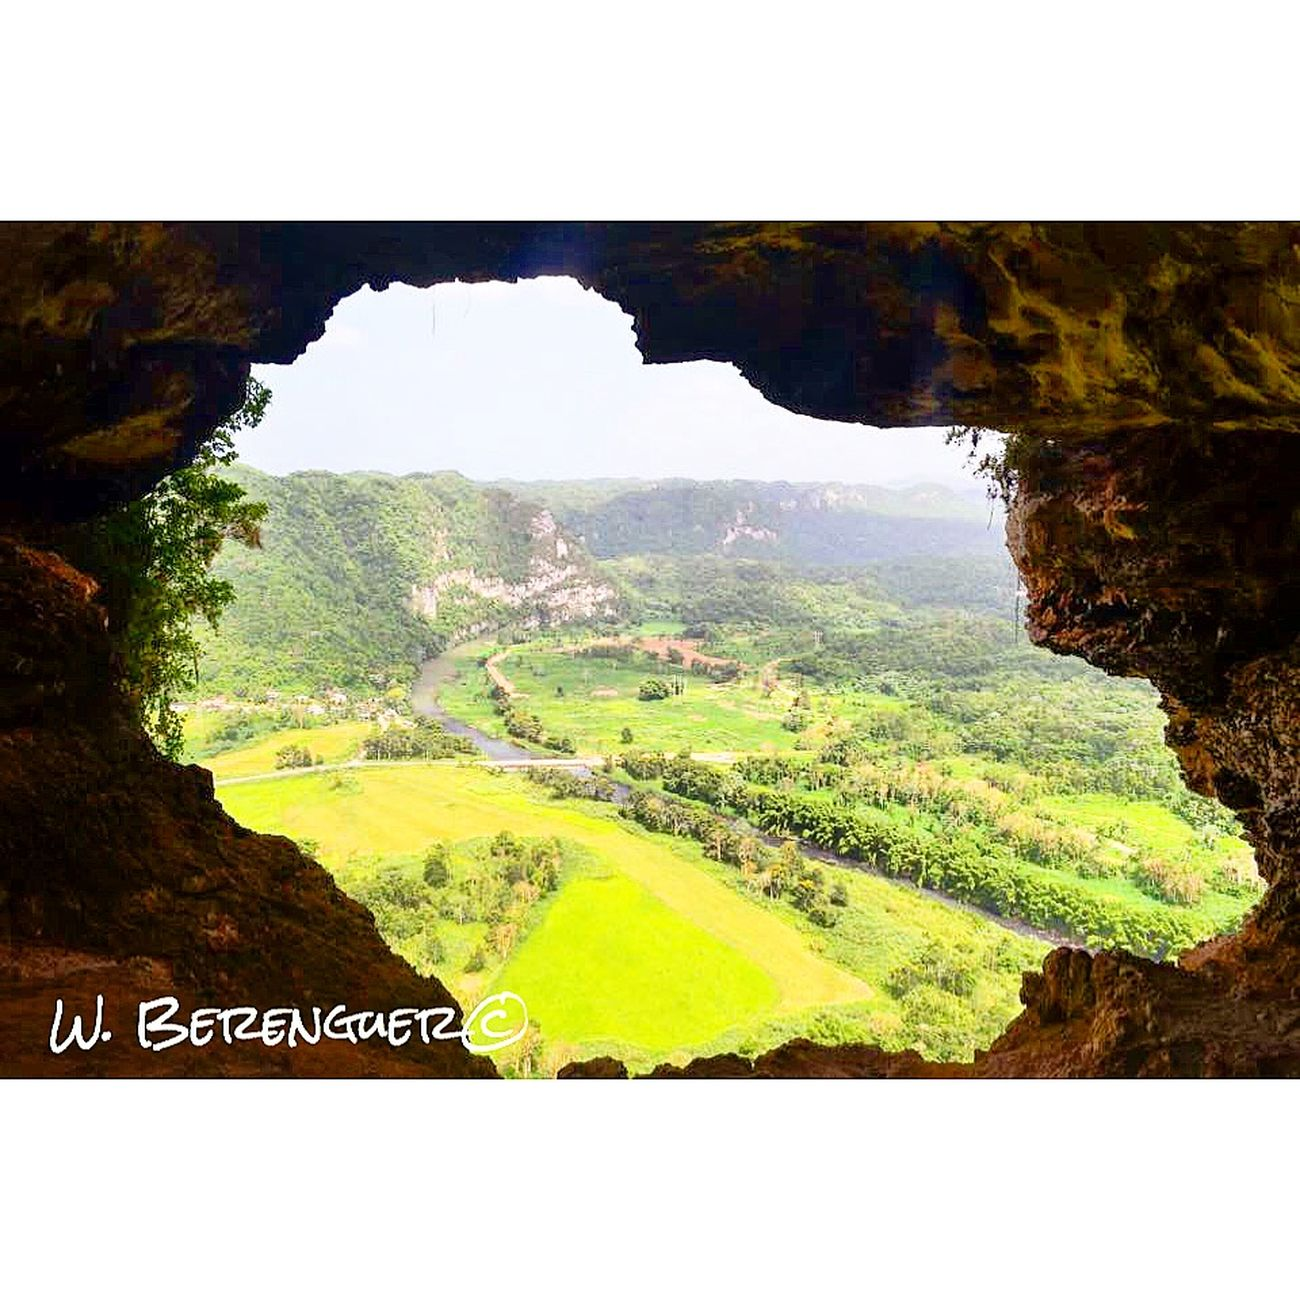 The Beauty Of Gods Creation !! Cueva Ventana Arecibo, PR Puerto Rico Puertoricolohacemejor EyeEm Nature Lover Nature_collection Nature Photography Nature_perfection Nikon D5100  EyeEm Best Shots